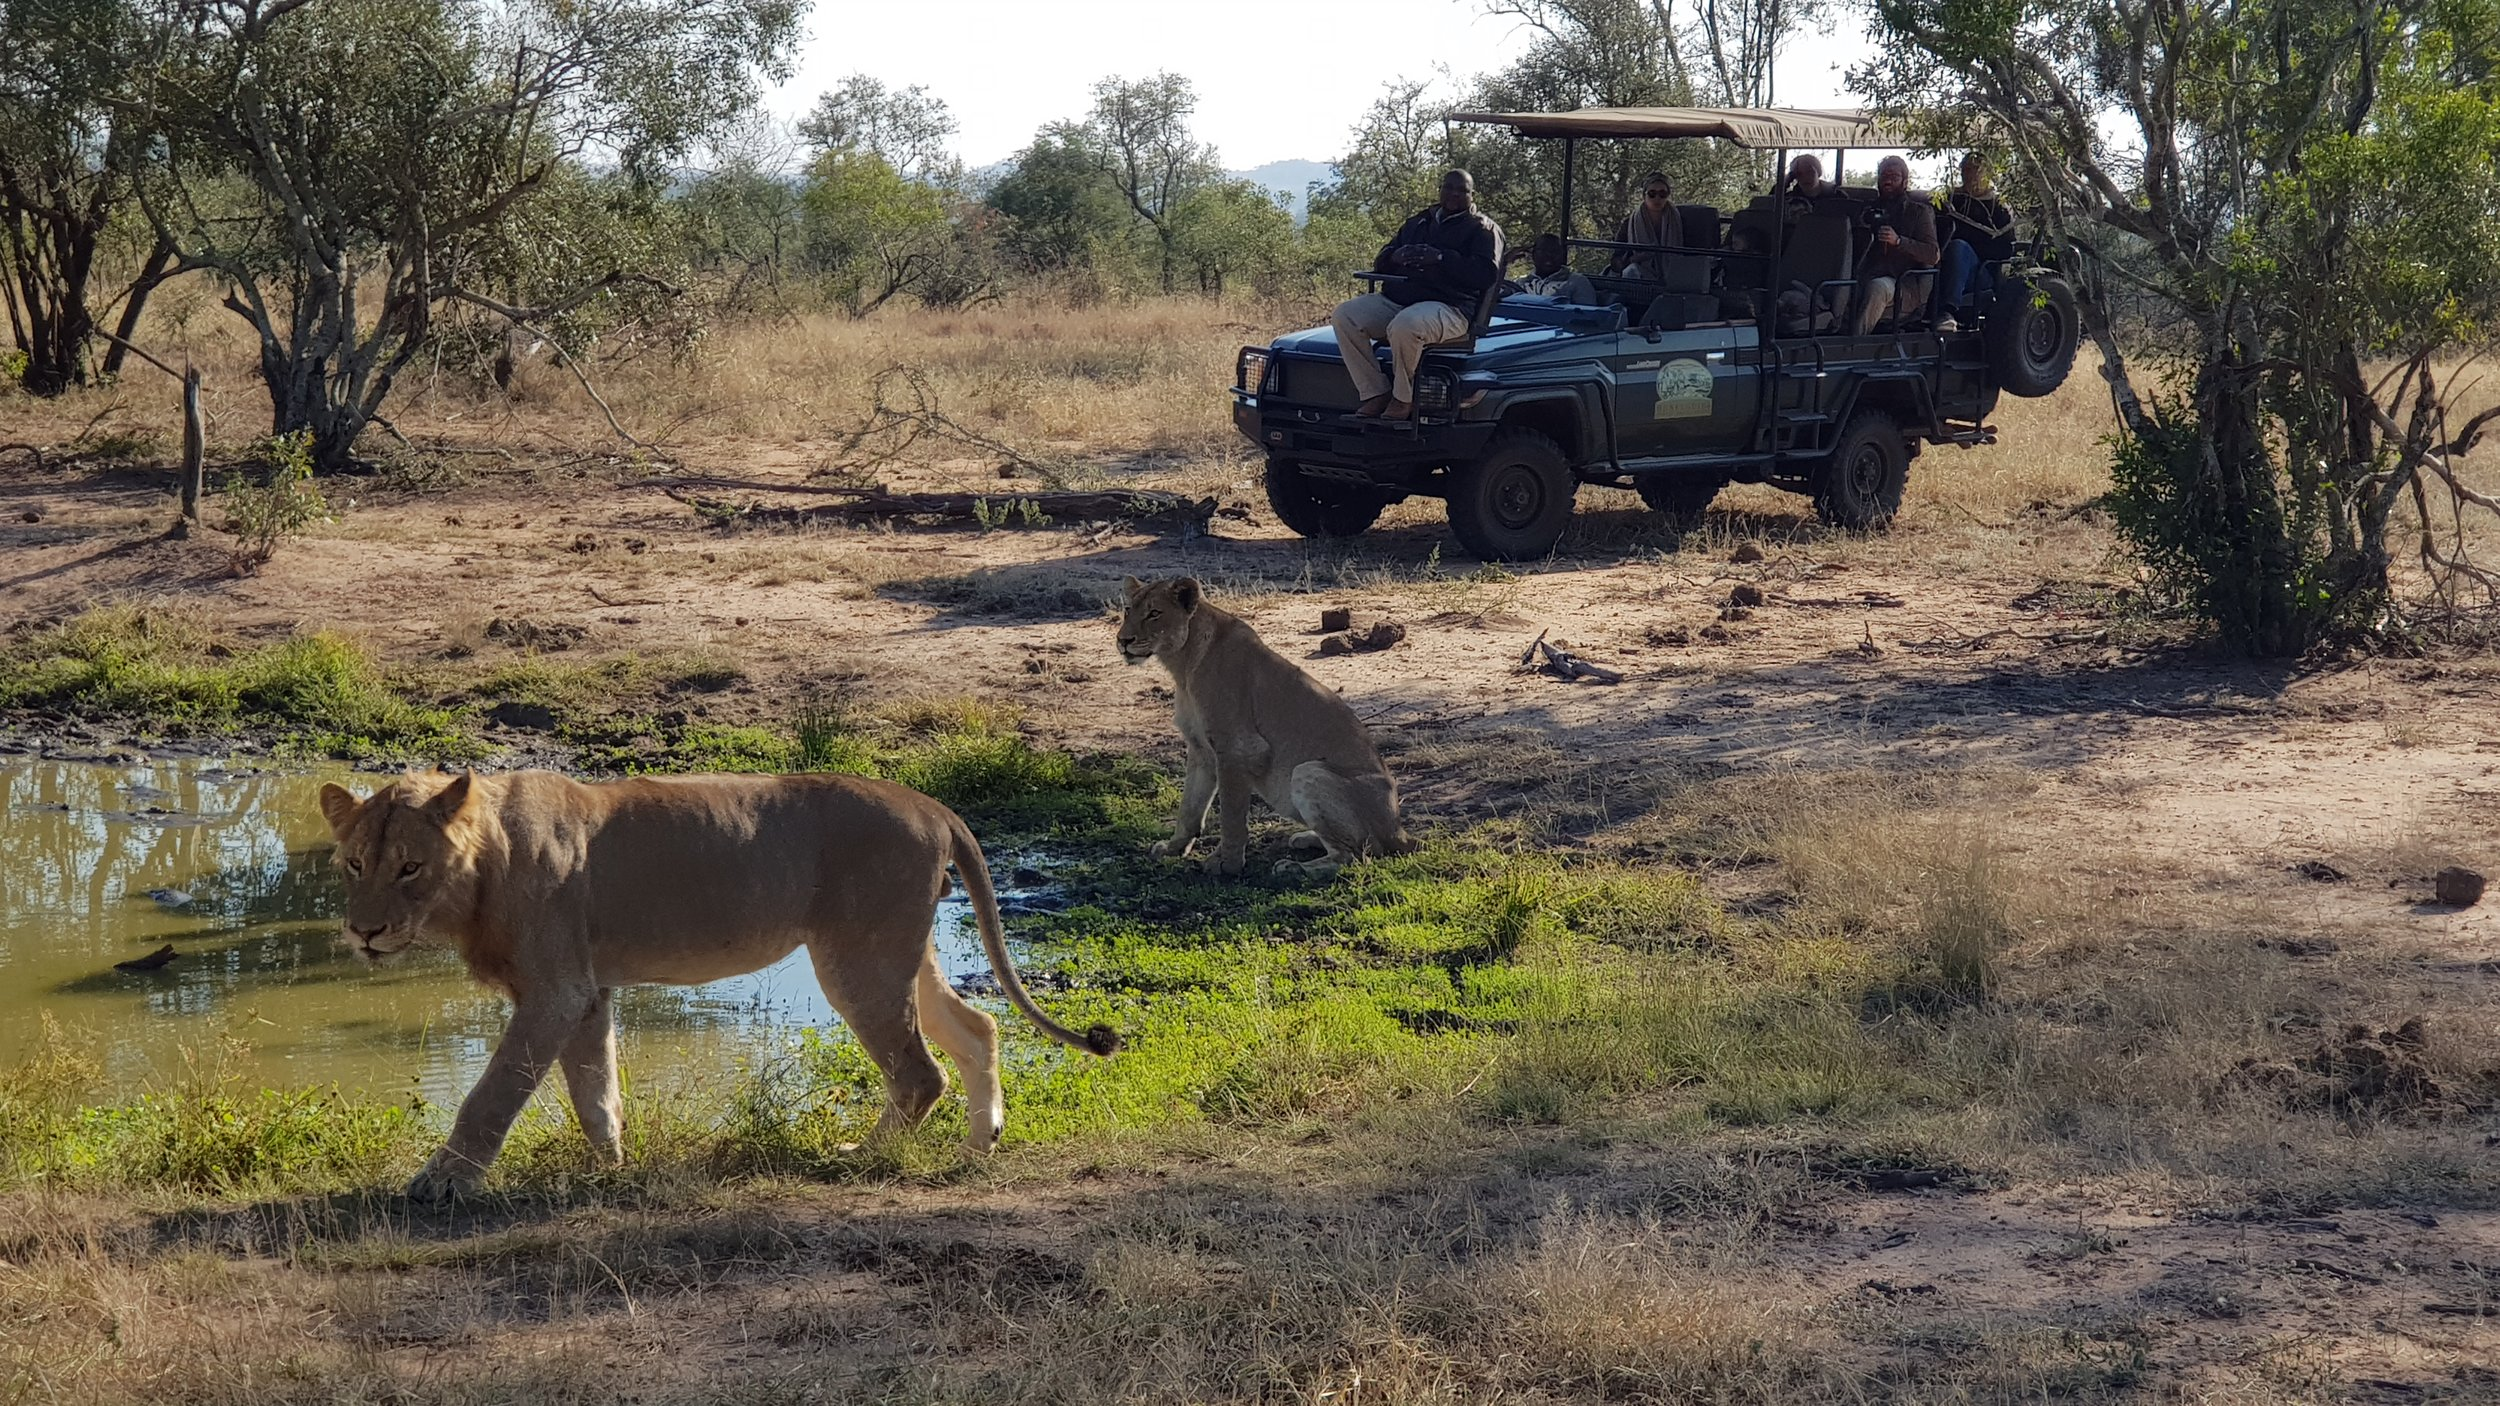 Getting close to Africa's Big Game on Safari